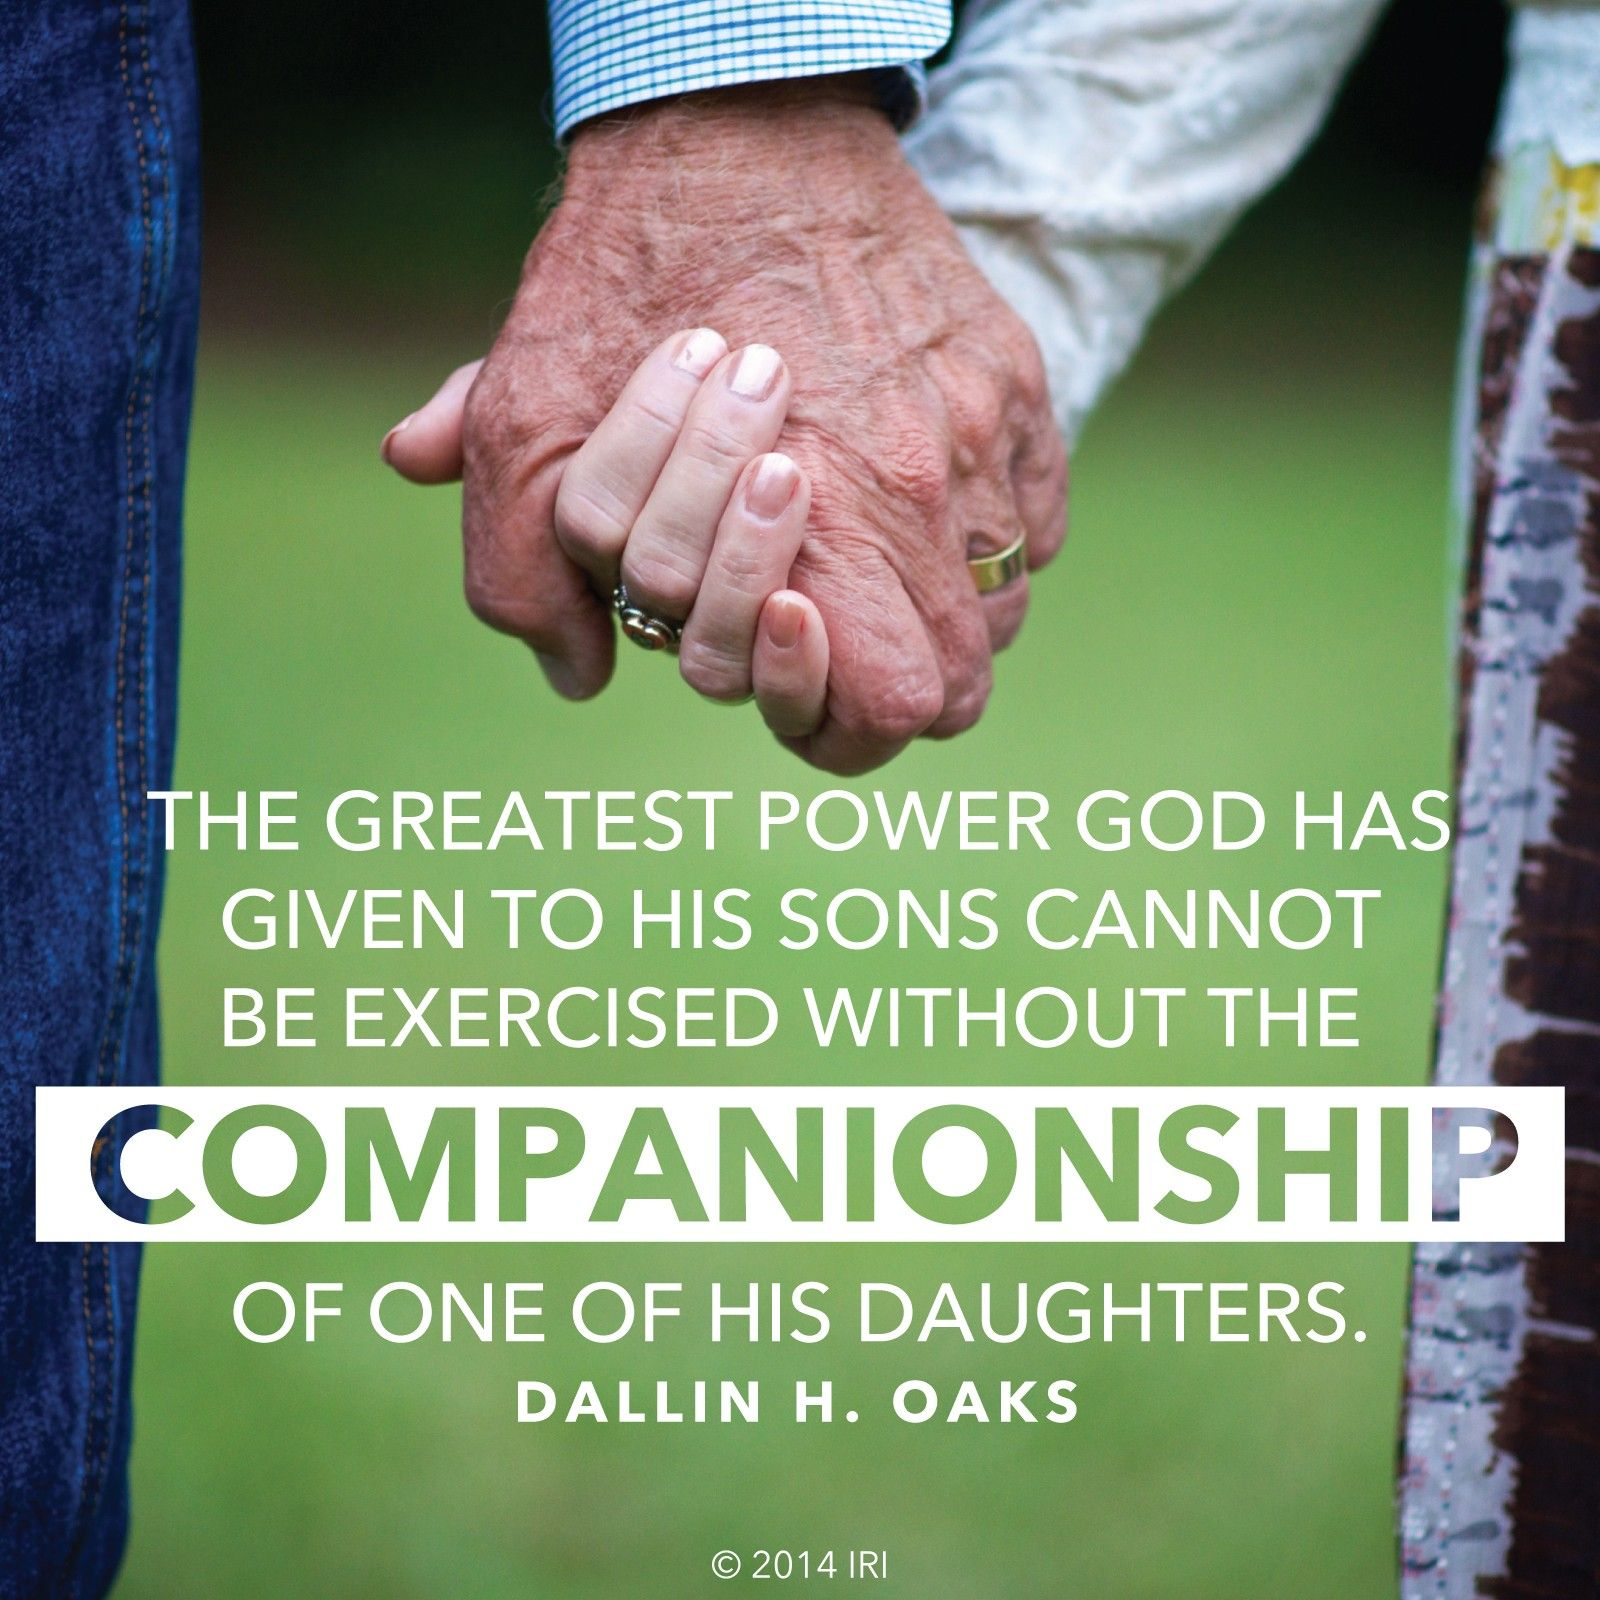 """""""The greatest power God has given to His sons cannot be exercised without the companionship of one of His daughters.""""—Elder Dallin H. Oaks, """"The Keys and Authority of the Priesthood"""""""